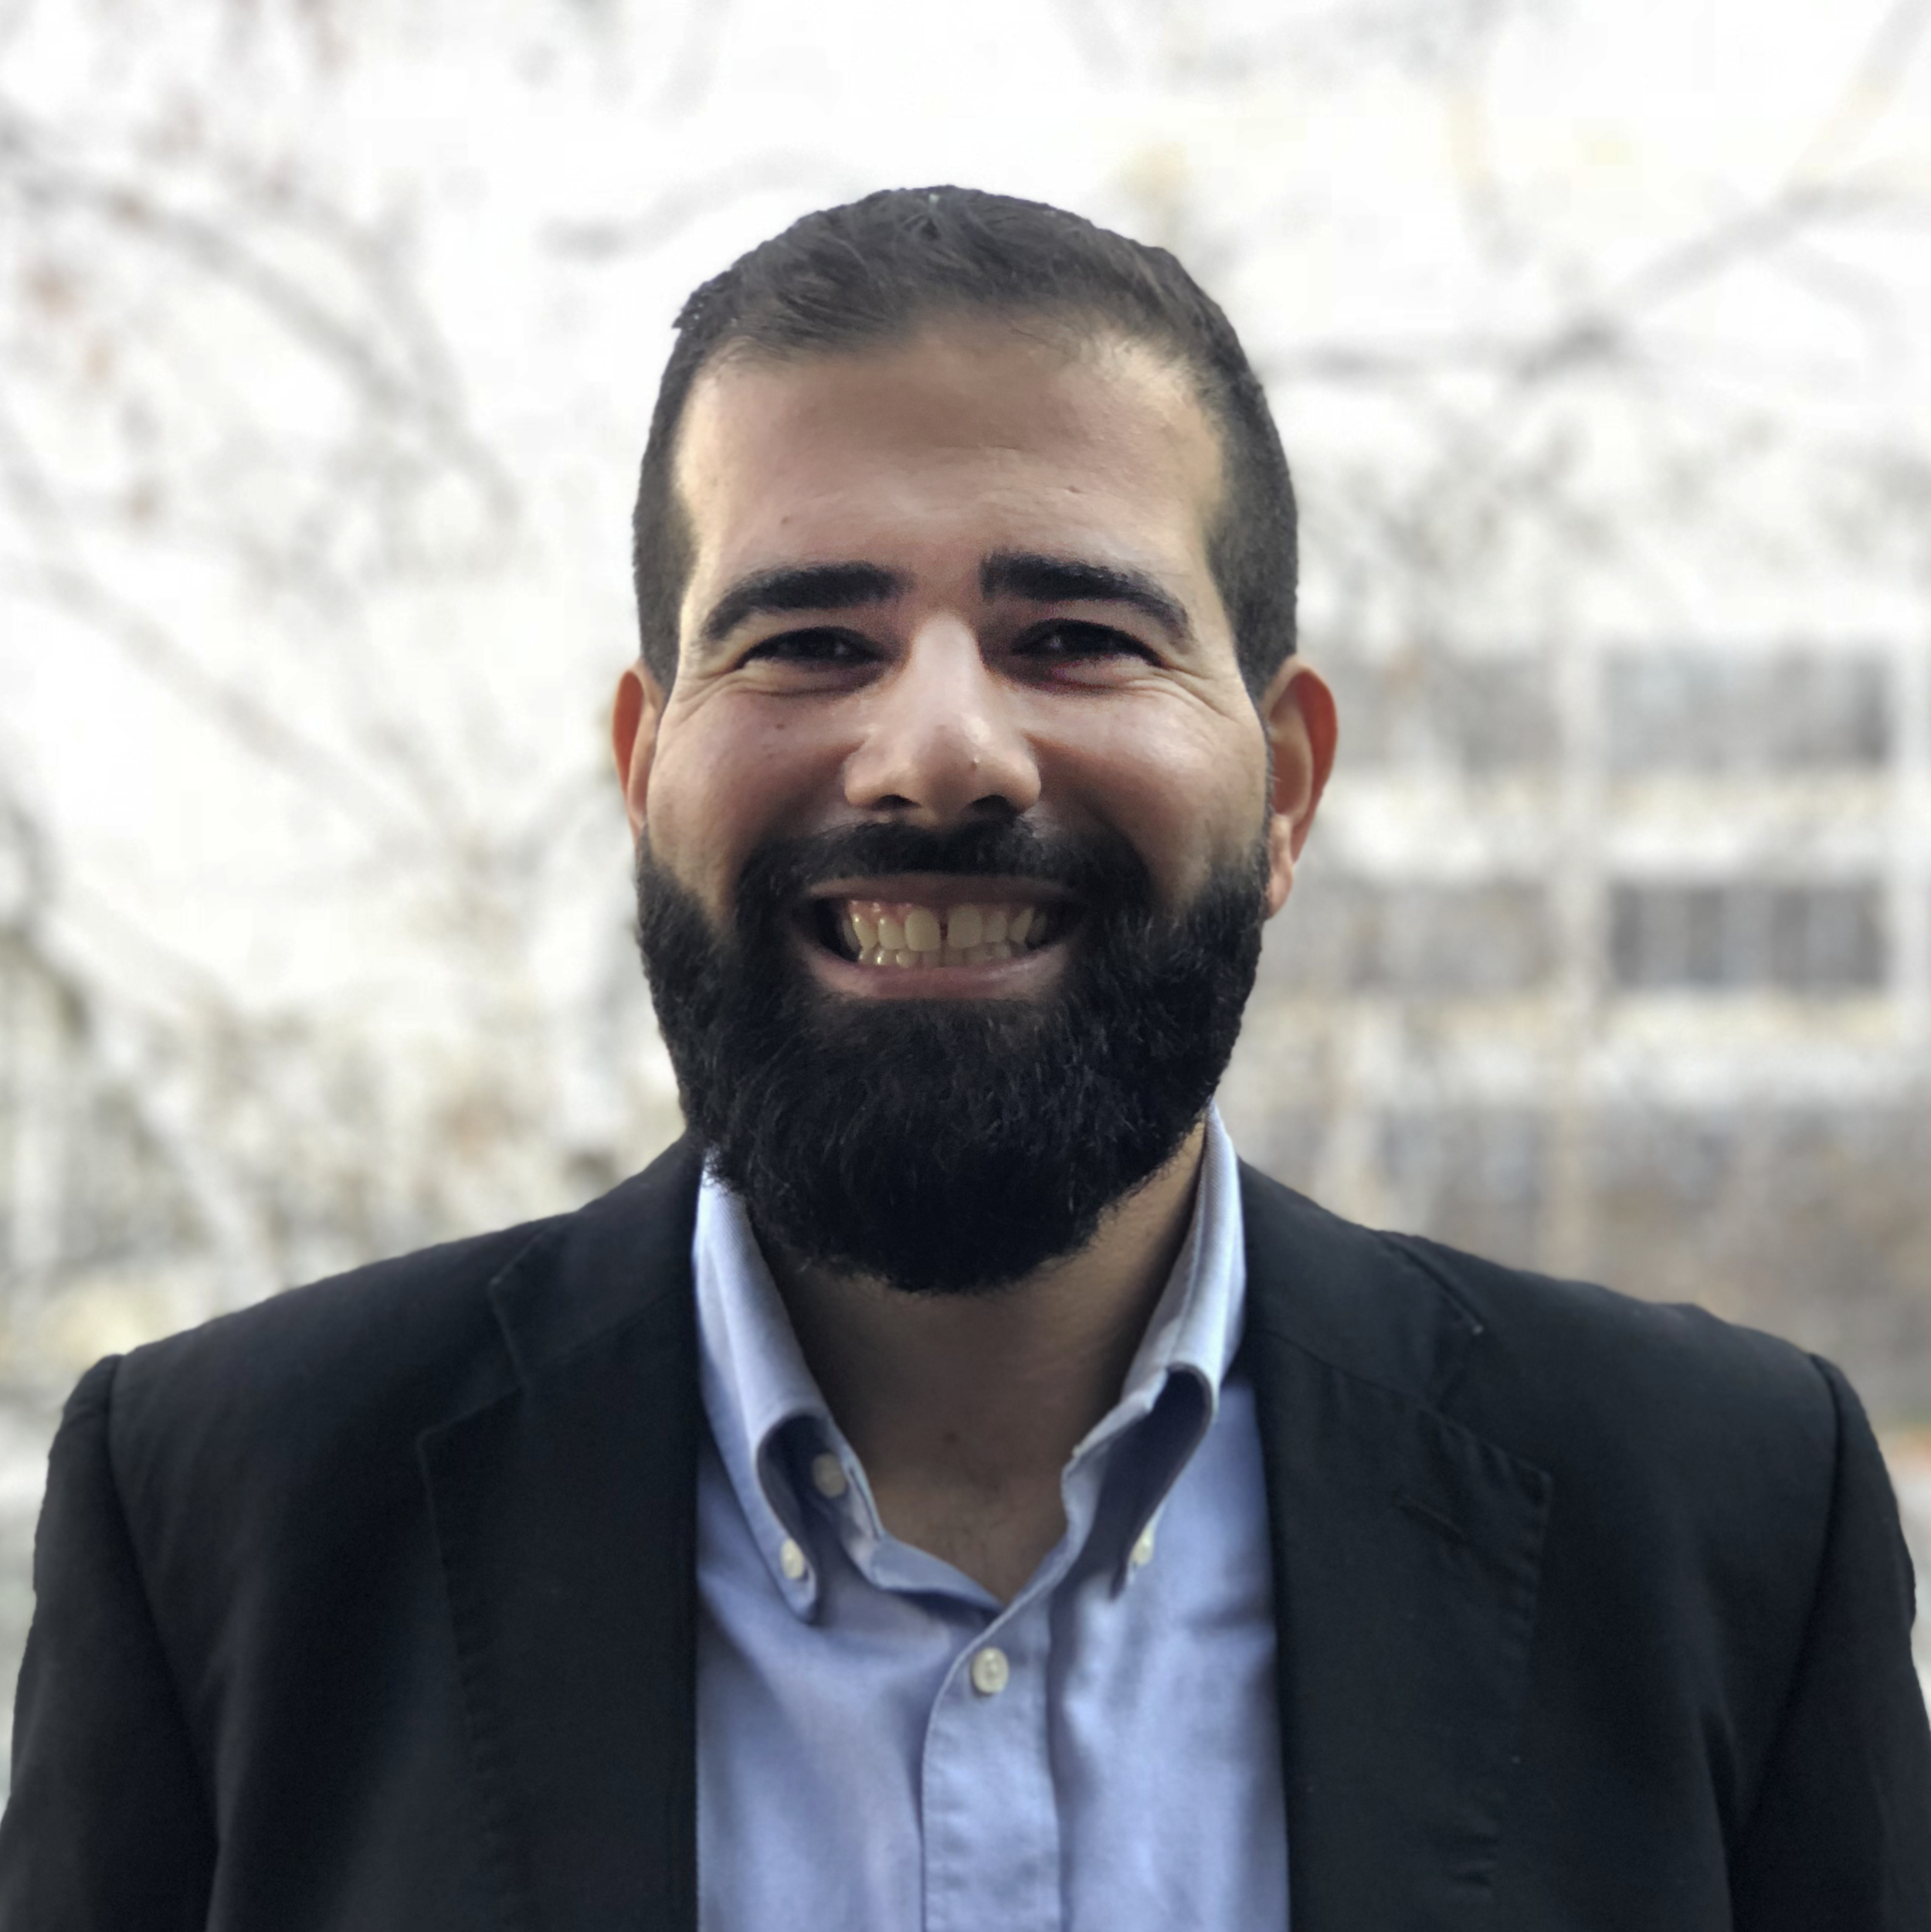 Abdelrahman Awad, MD - Clinical Subjects Coordinator - Abdel works with the Clinical Research Unit and assists in recruiting patients and collecting data for MCIRCC members' clinical studies.abawad@umich.edu